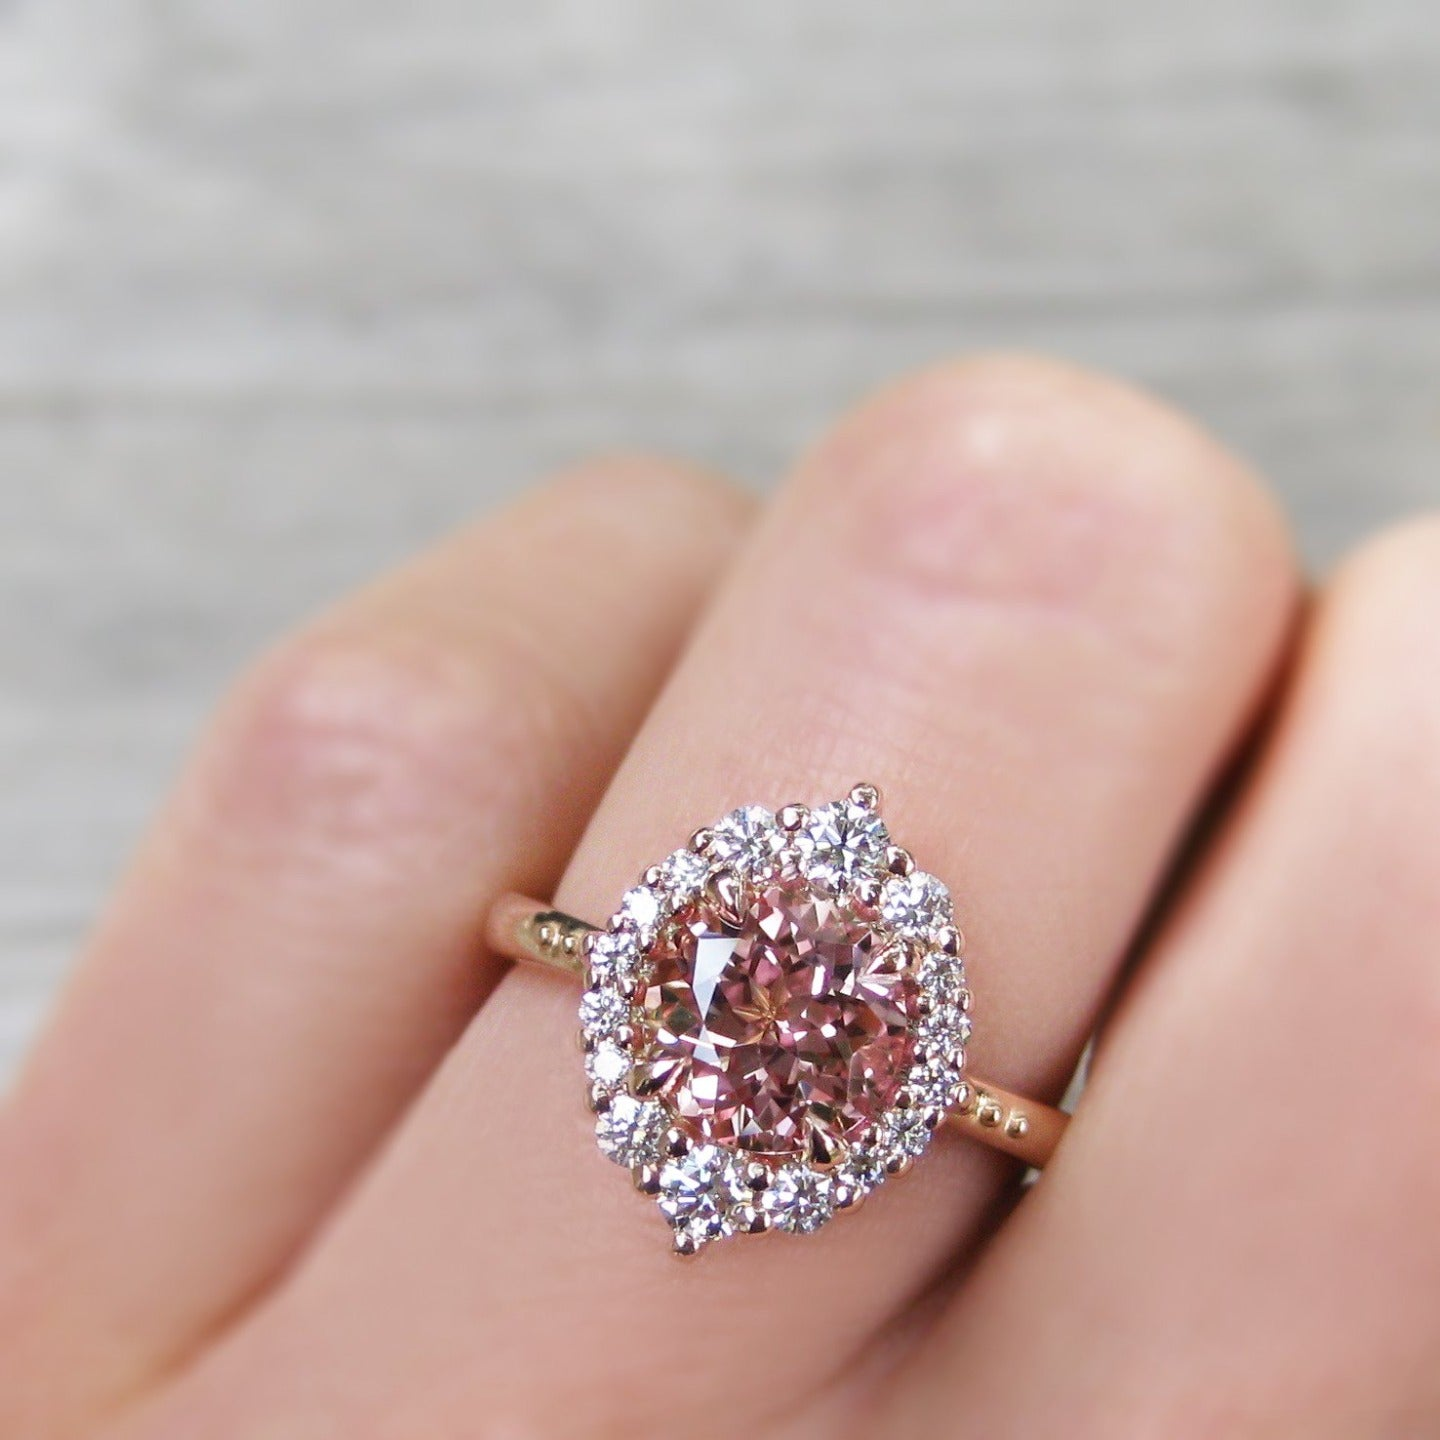 Peach Champagne Sapphire Engagement Ring & Diamond Halo | Kristin ...